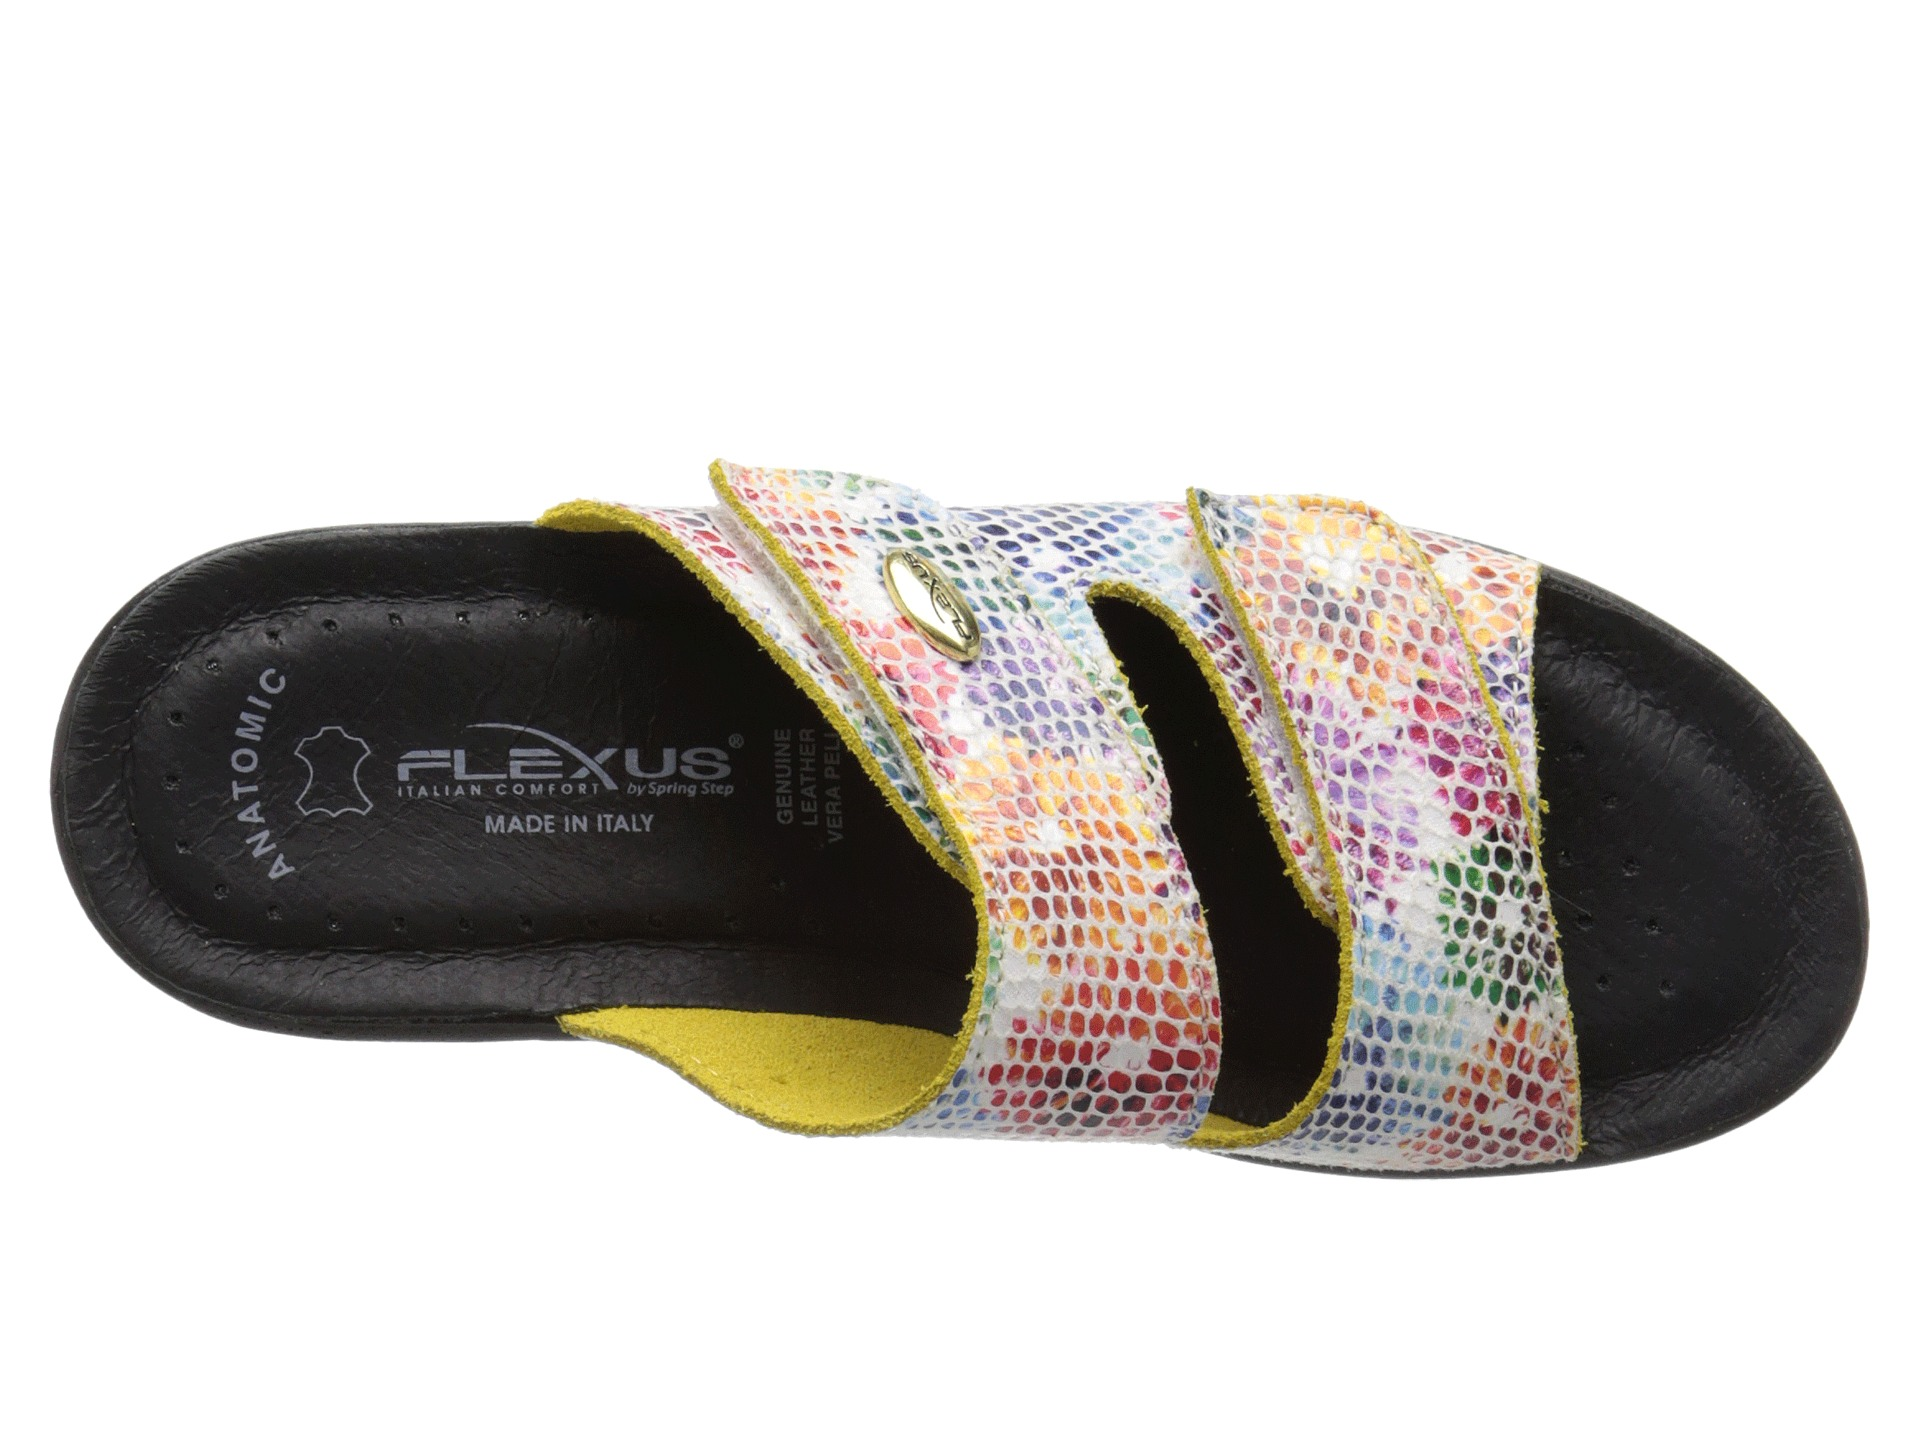 From Flexus by Spring Step, these Kina leather slide sandals offer all-day comfort with an airy double-strap design and high-quality, supportive construction. Done in a pretty printed pattern, the hook-and-loop closures adjust for a secure, individualized fit. Shoe Fit Guide. Shoe Glossary. Free Exchanges. Delivery Date Estimate.4/5(2).